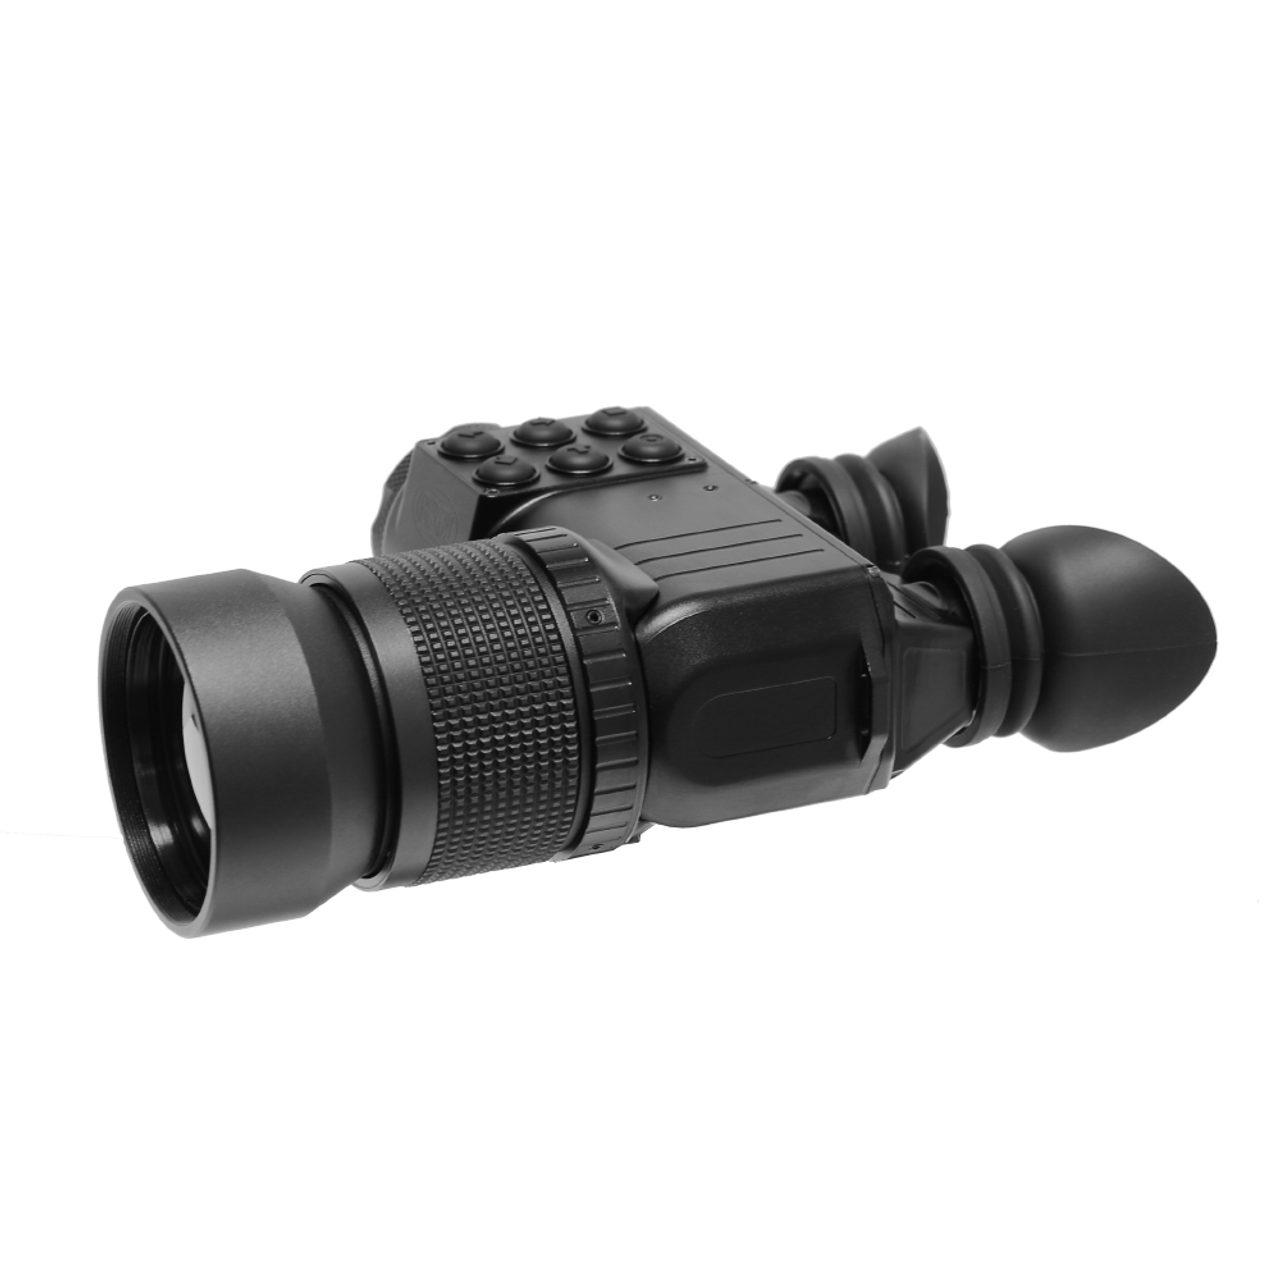 Long Range Thermal Binoculars UNITEC-B75